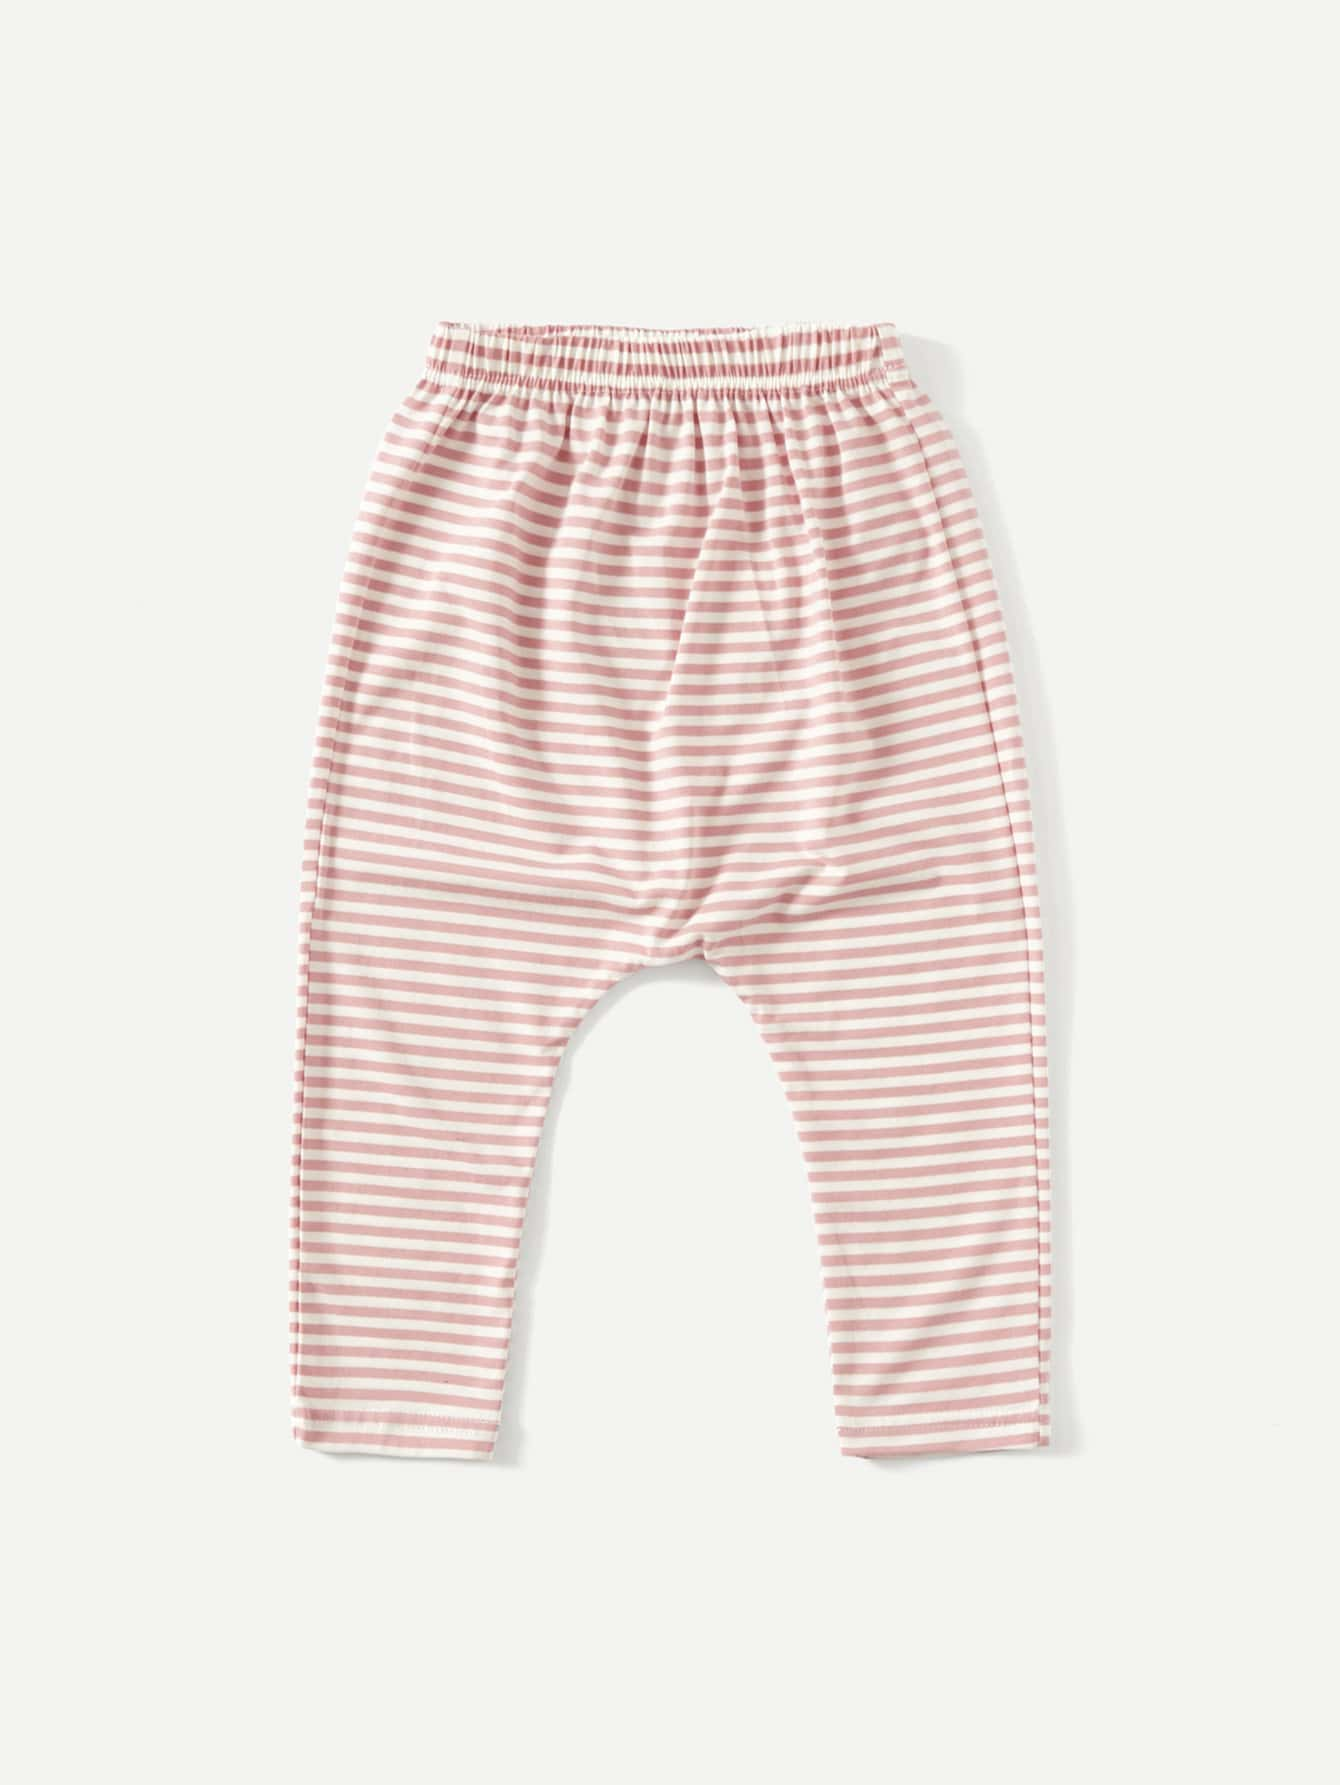 Kids Elastic Waist Striped Pants kids elastic waist striped pants